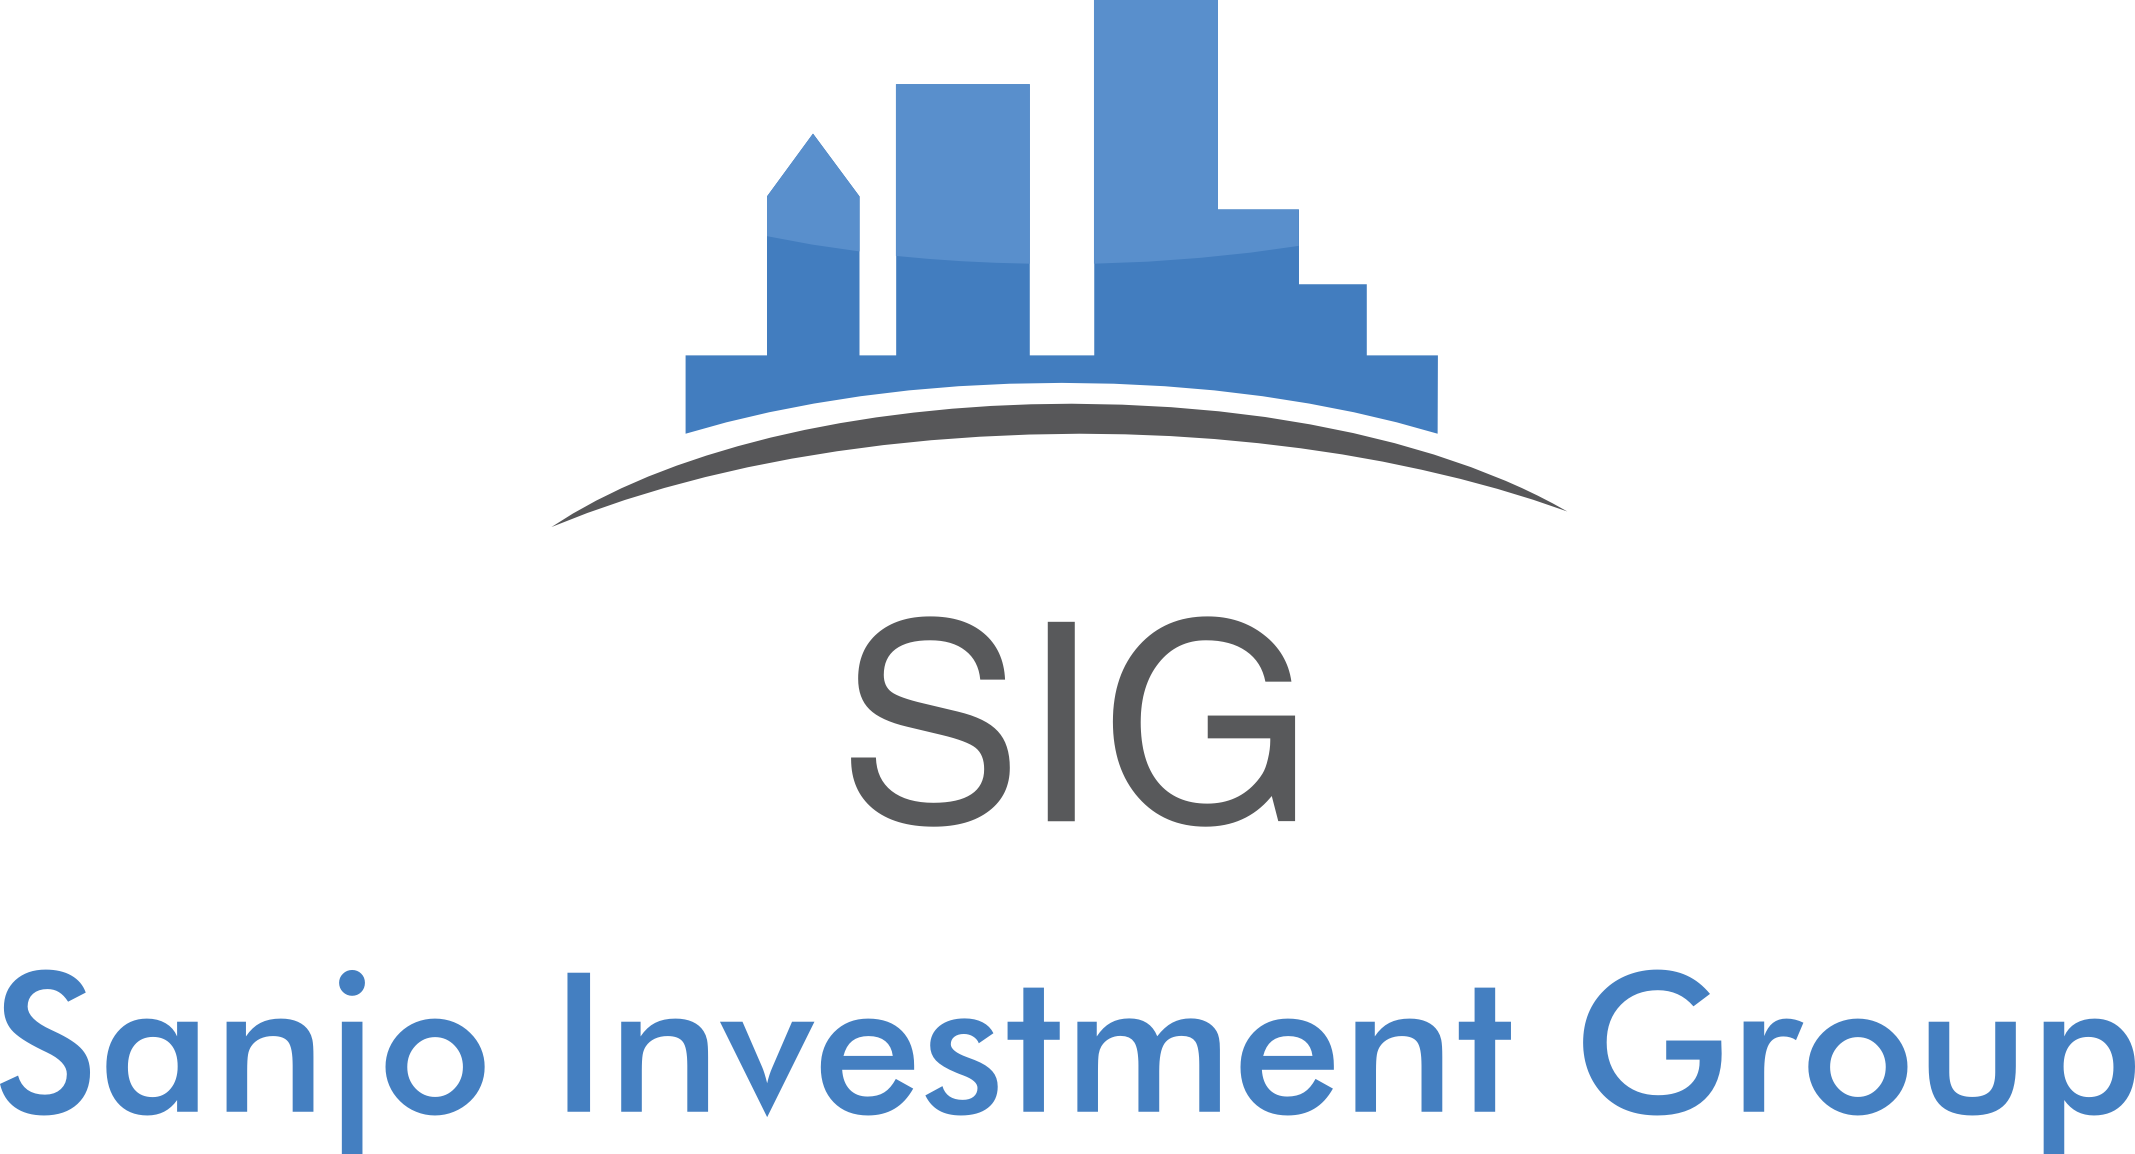 Sanjo Investment Group